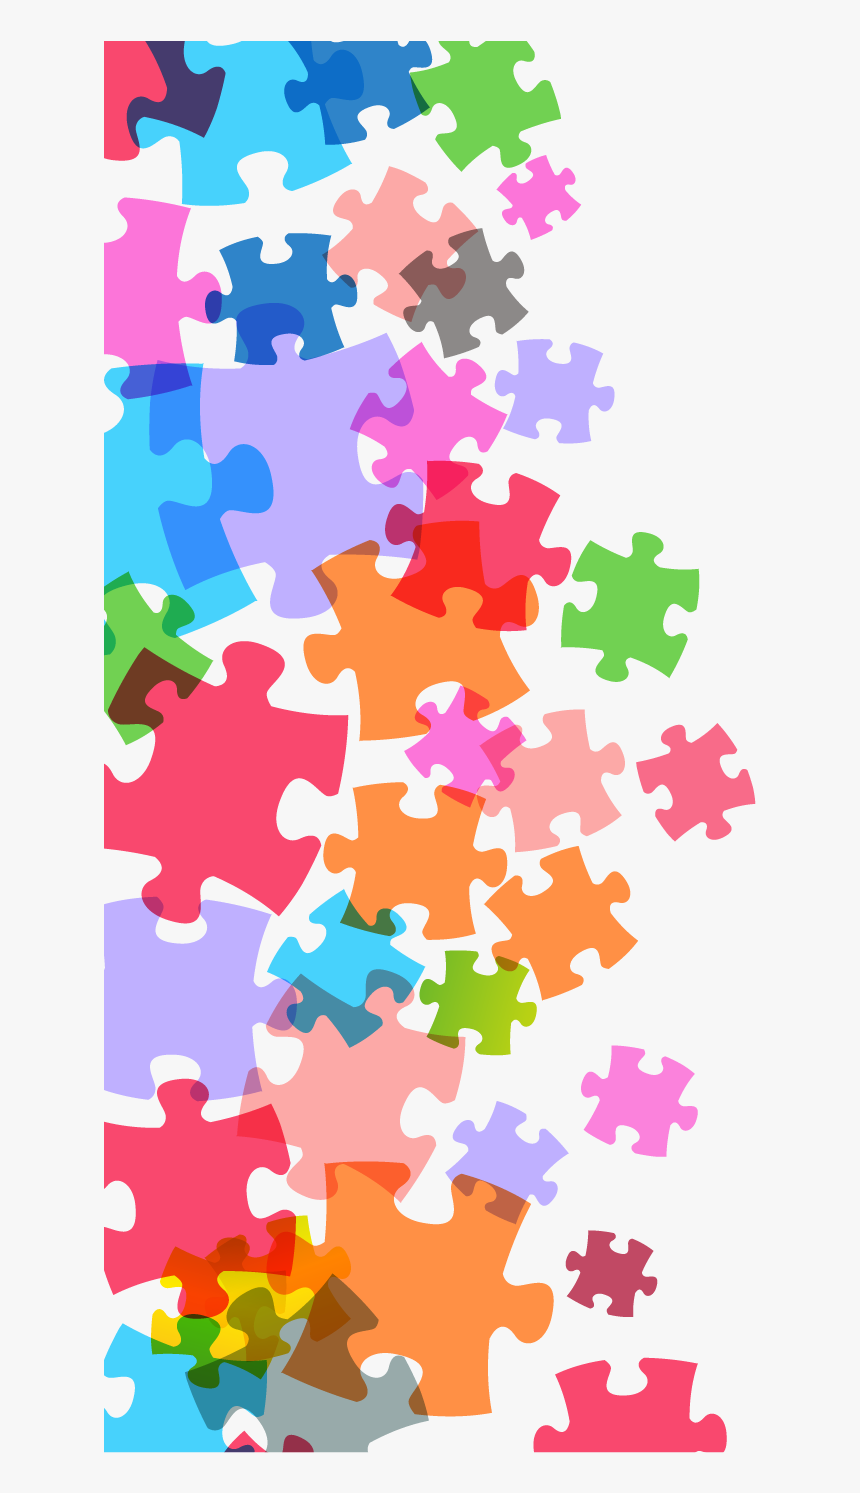 Jigsaw Puzzles Clip Art Transparent Background Jigsaw Puzzle Png